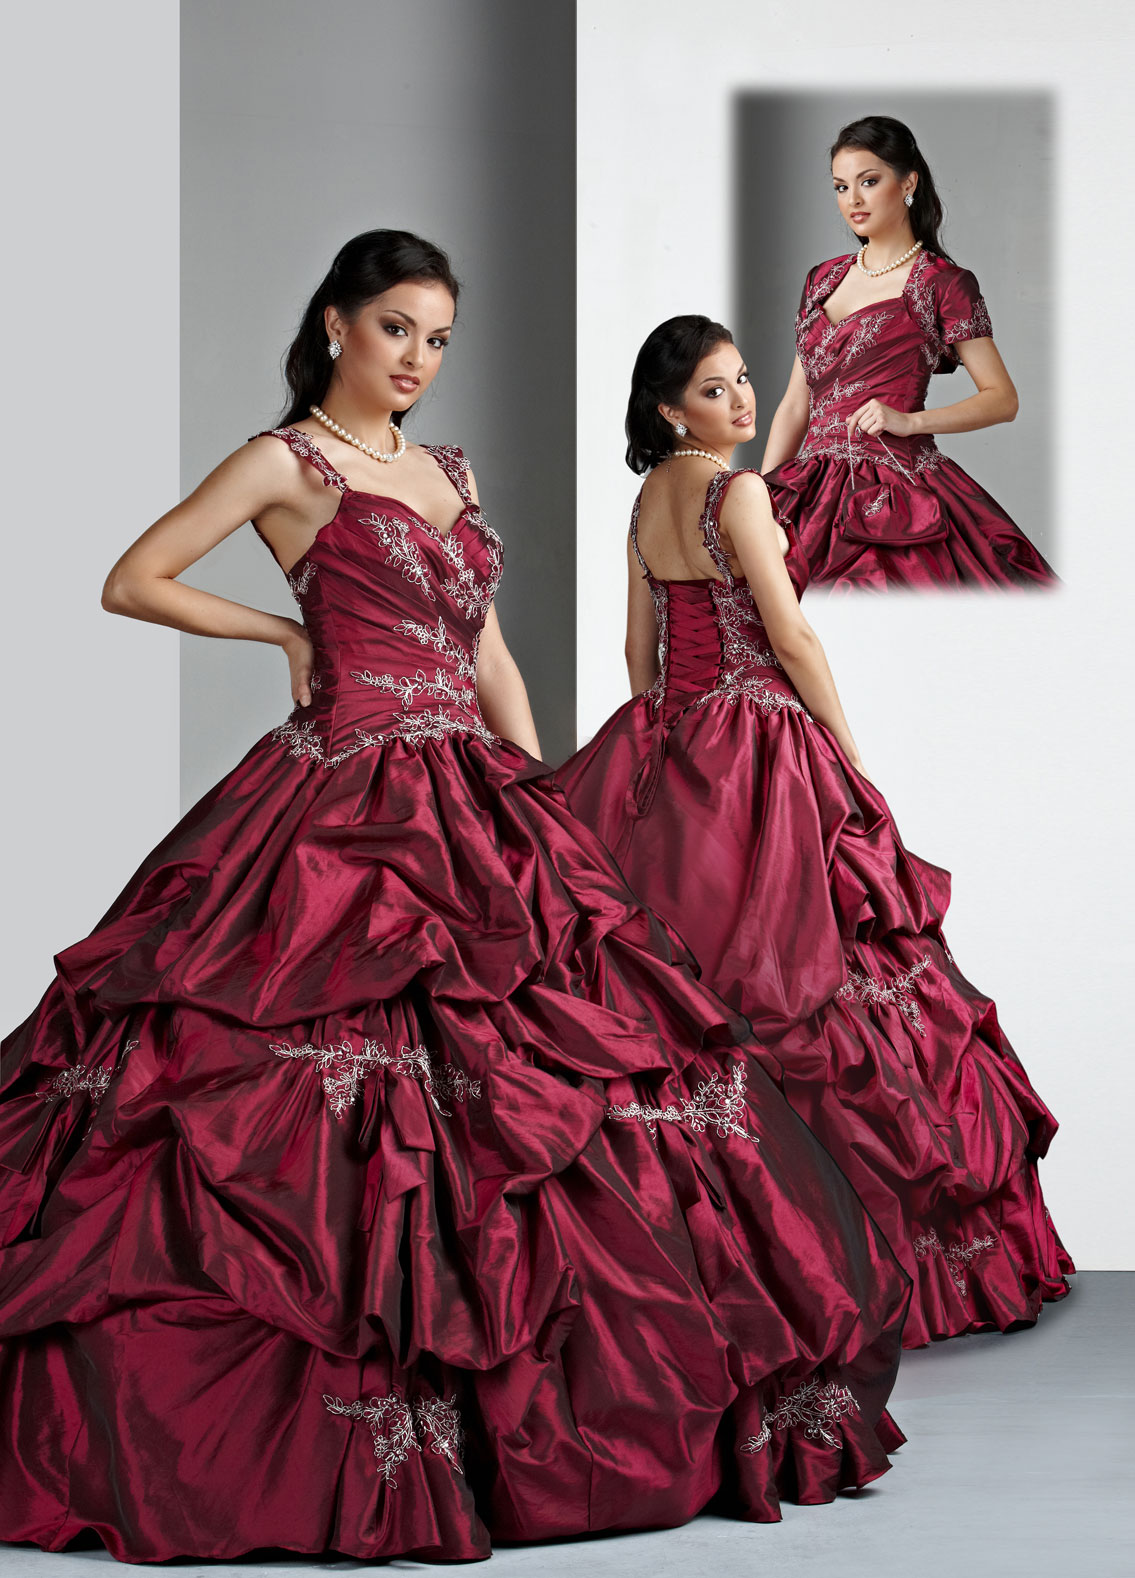 Strap And Sweetheart Lace Up Floor Length Burgundy Ball Gown Quinceanera Dresses With Embroidery And Ruffles